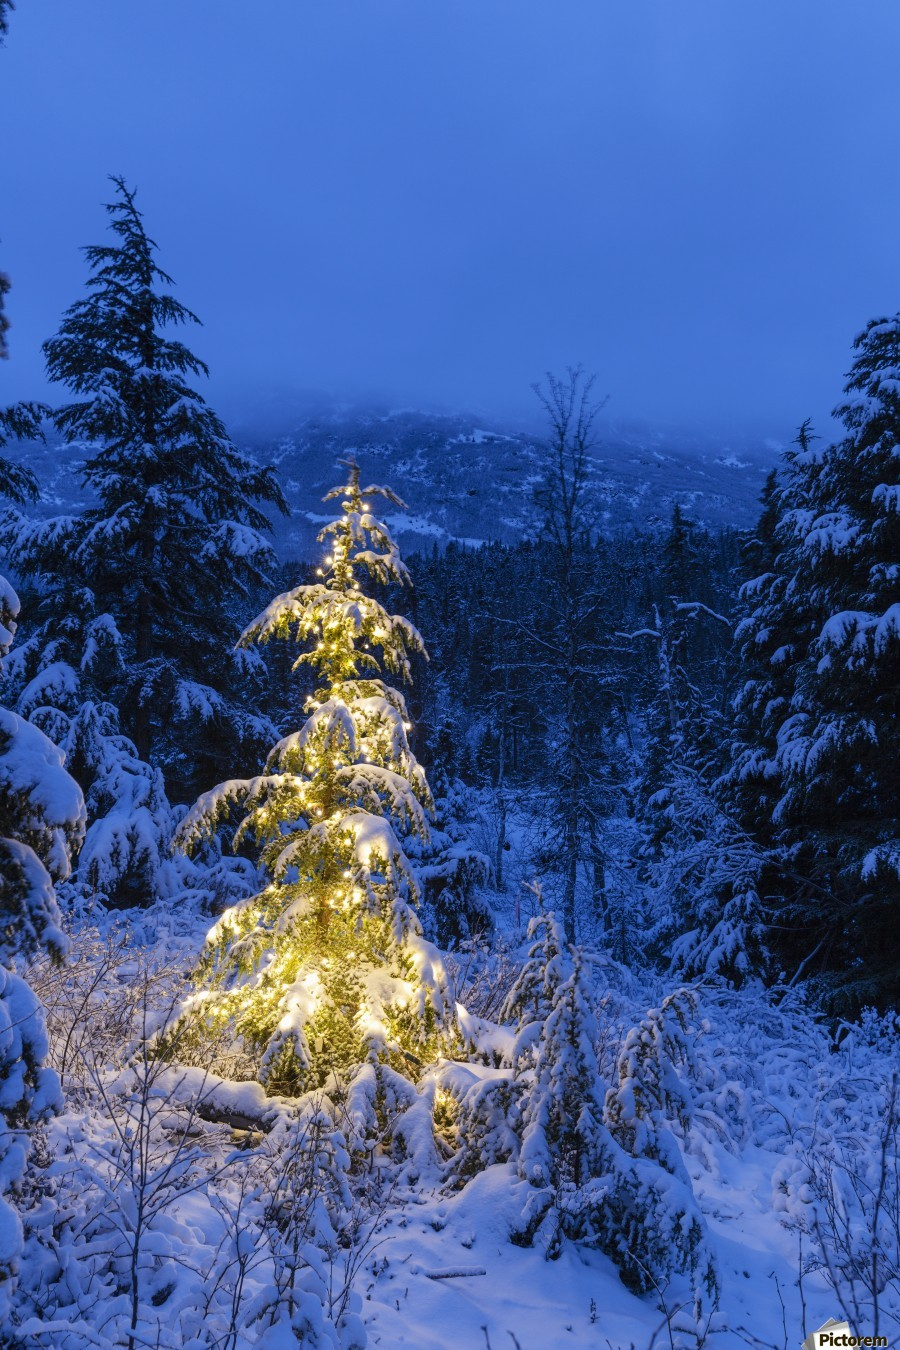 A festive Mountain Hemlock evergreen tree strung with white lights and covered in snow in a wintery landscape, Kenai Mountains; Moose Pass, Alaska, United States of America  Print